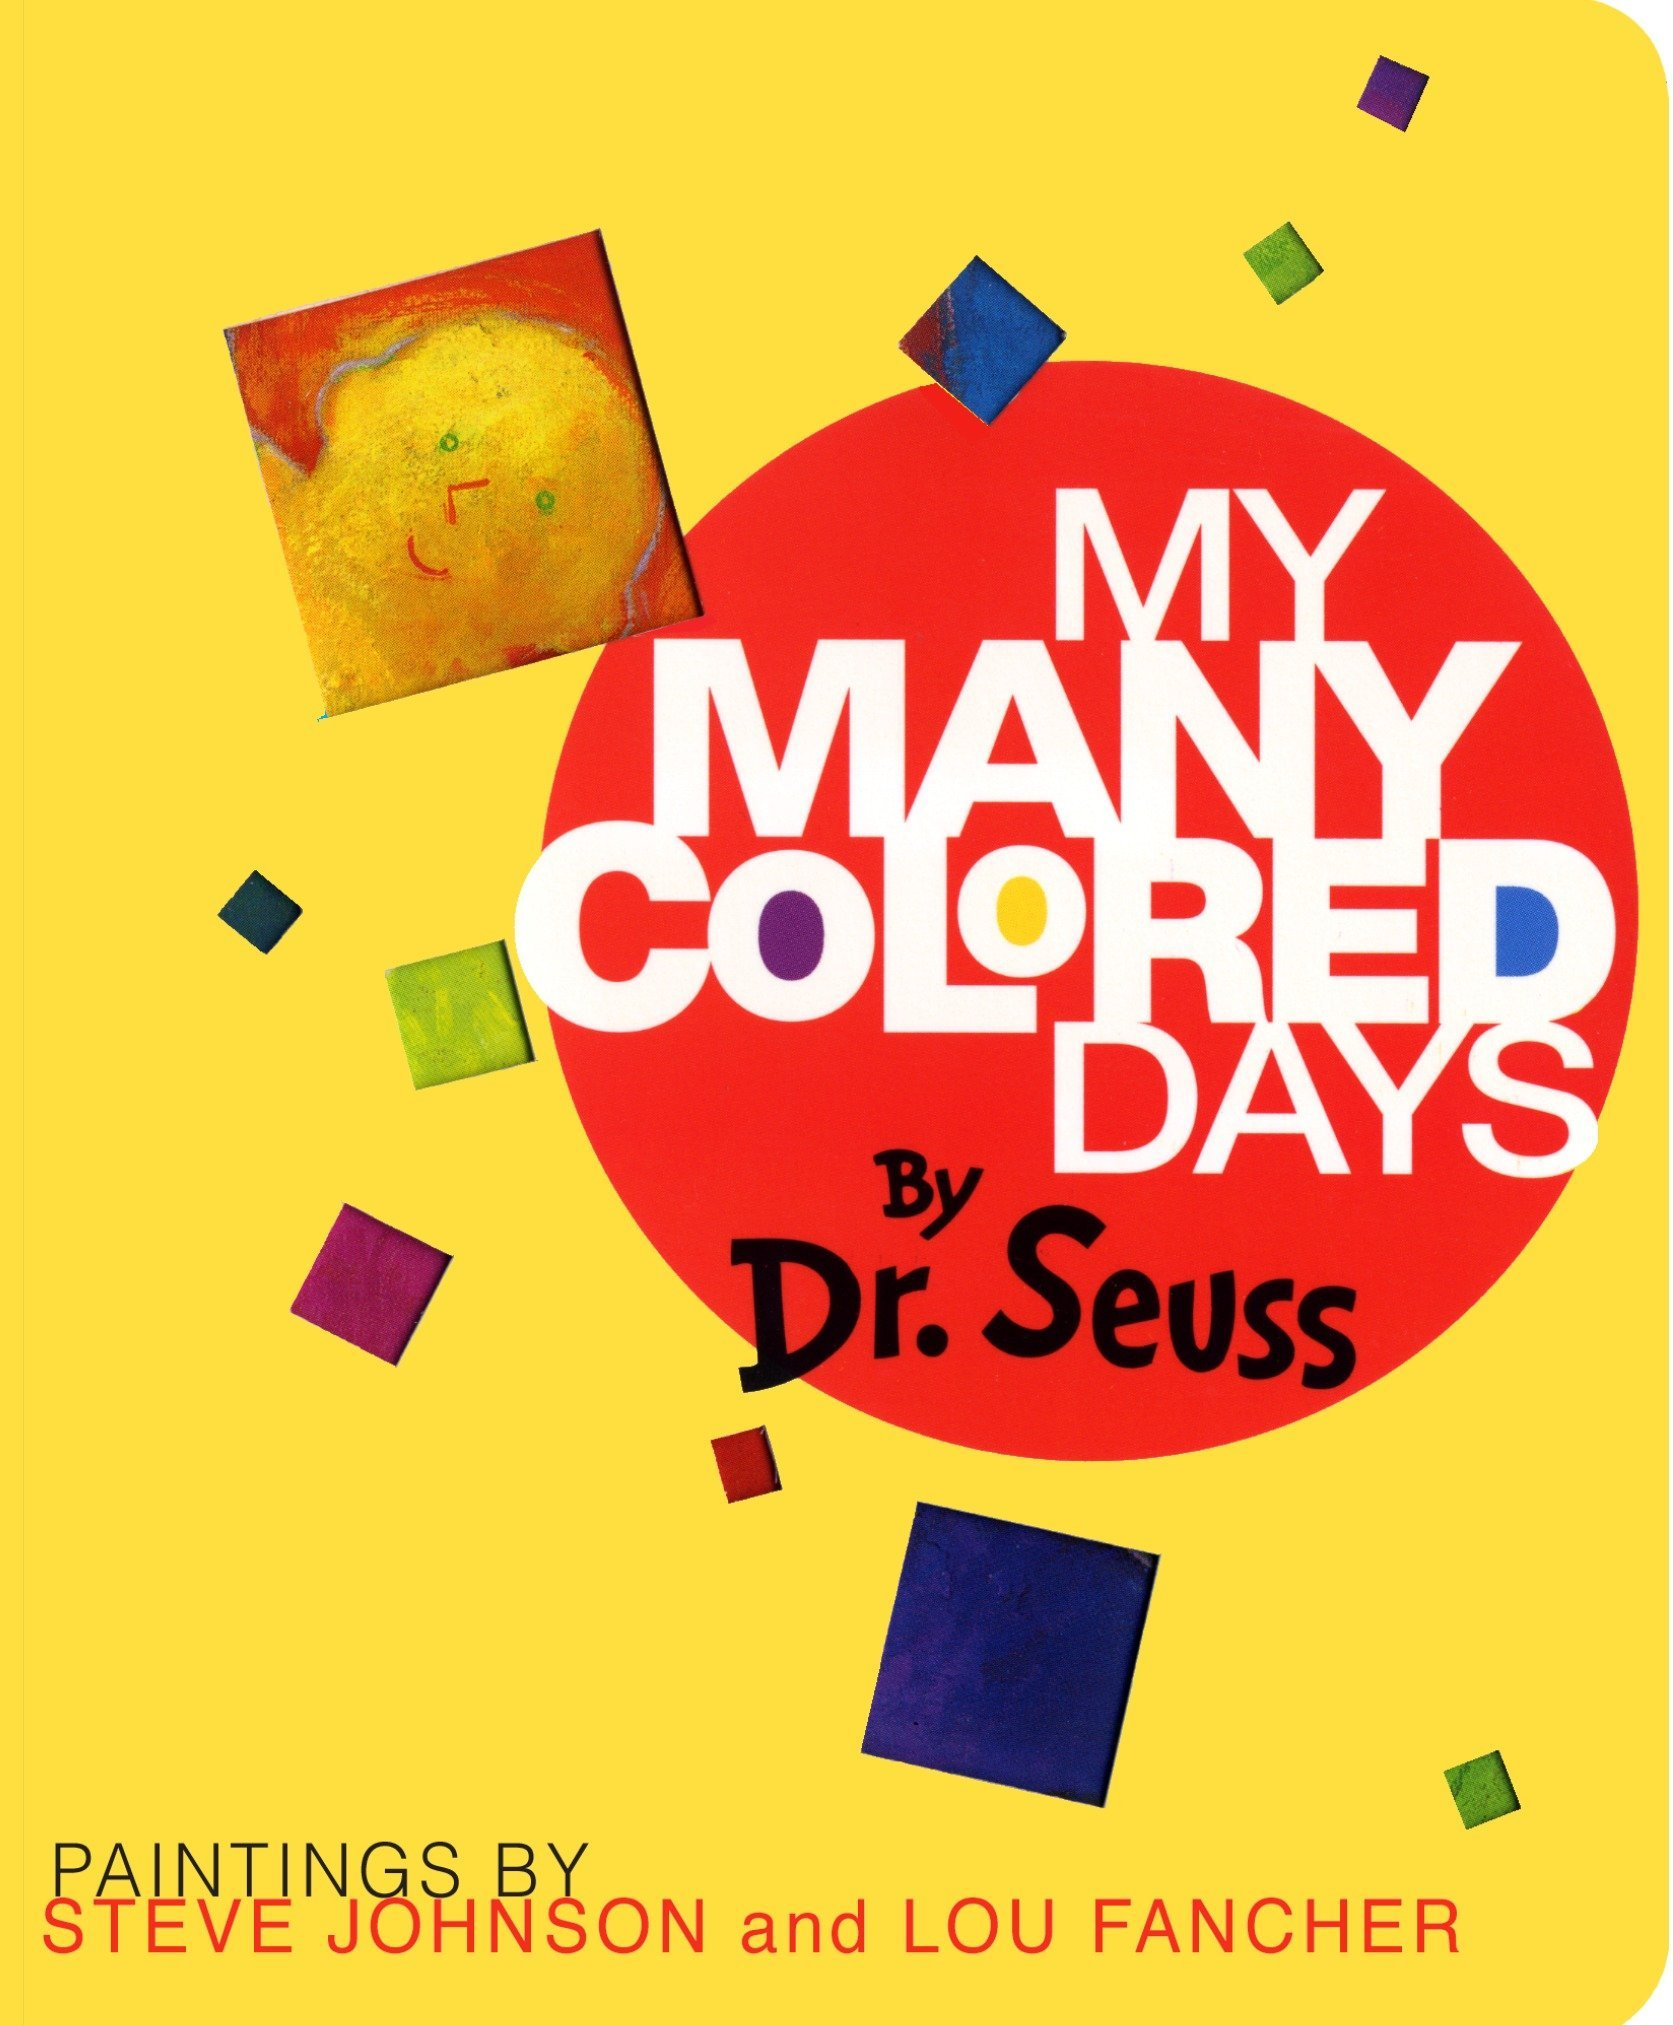 4. 'My Many Colored Days'